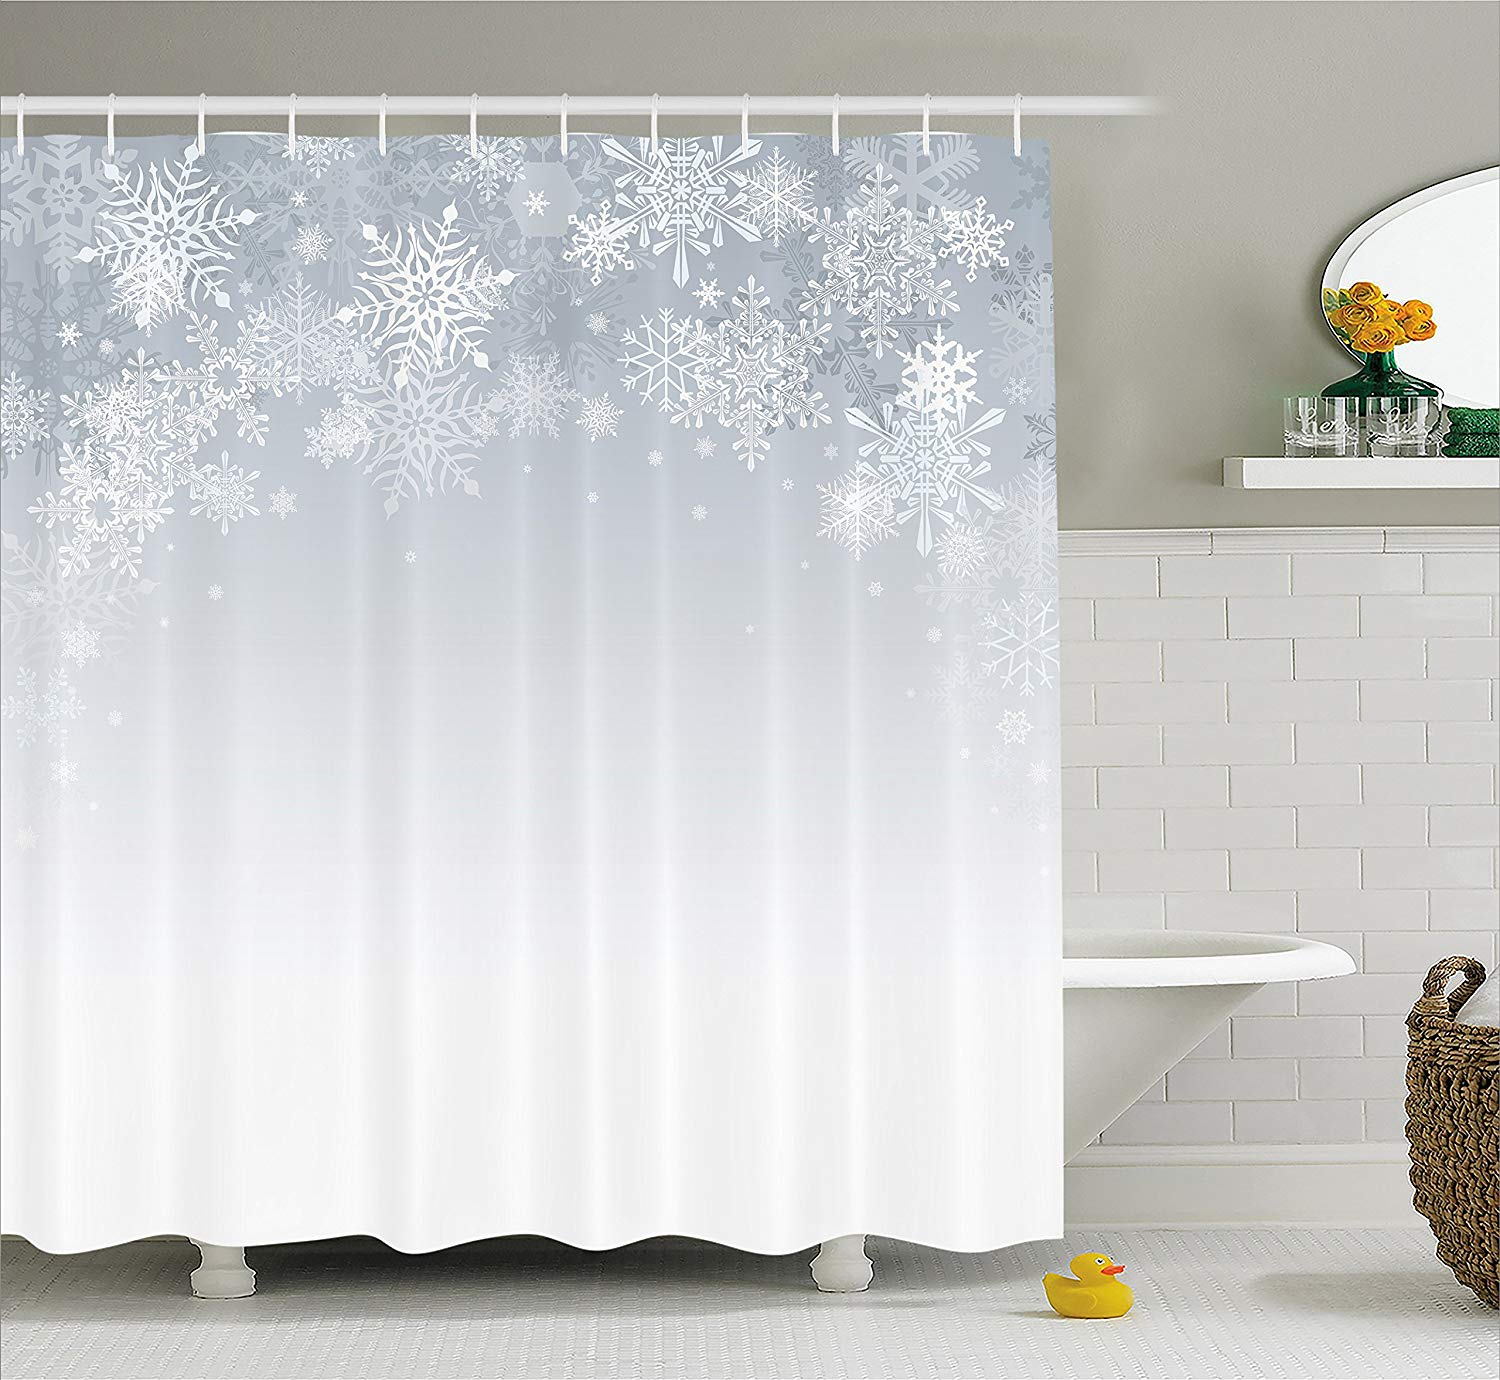 "Ambesonne Winter Shower Curtain, Christmas Background with Snowflake Shapes Ornamental Design on Plain Backdrop, Cloth Fabric Bathroom Decor Set with Hooks, 70"" Long, Blue Grey"